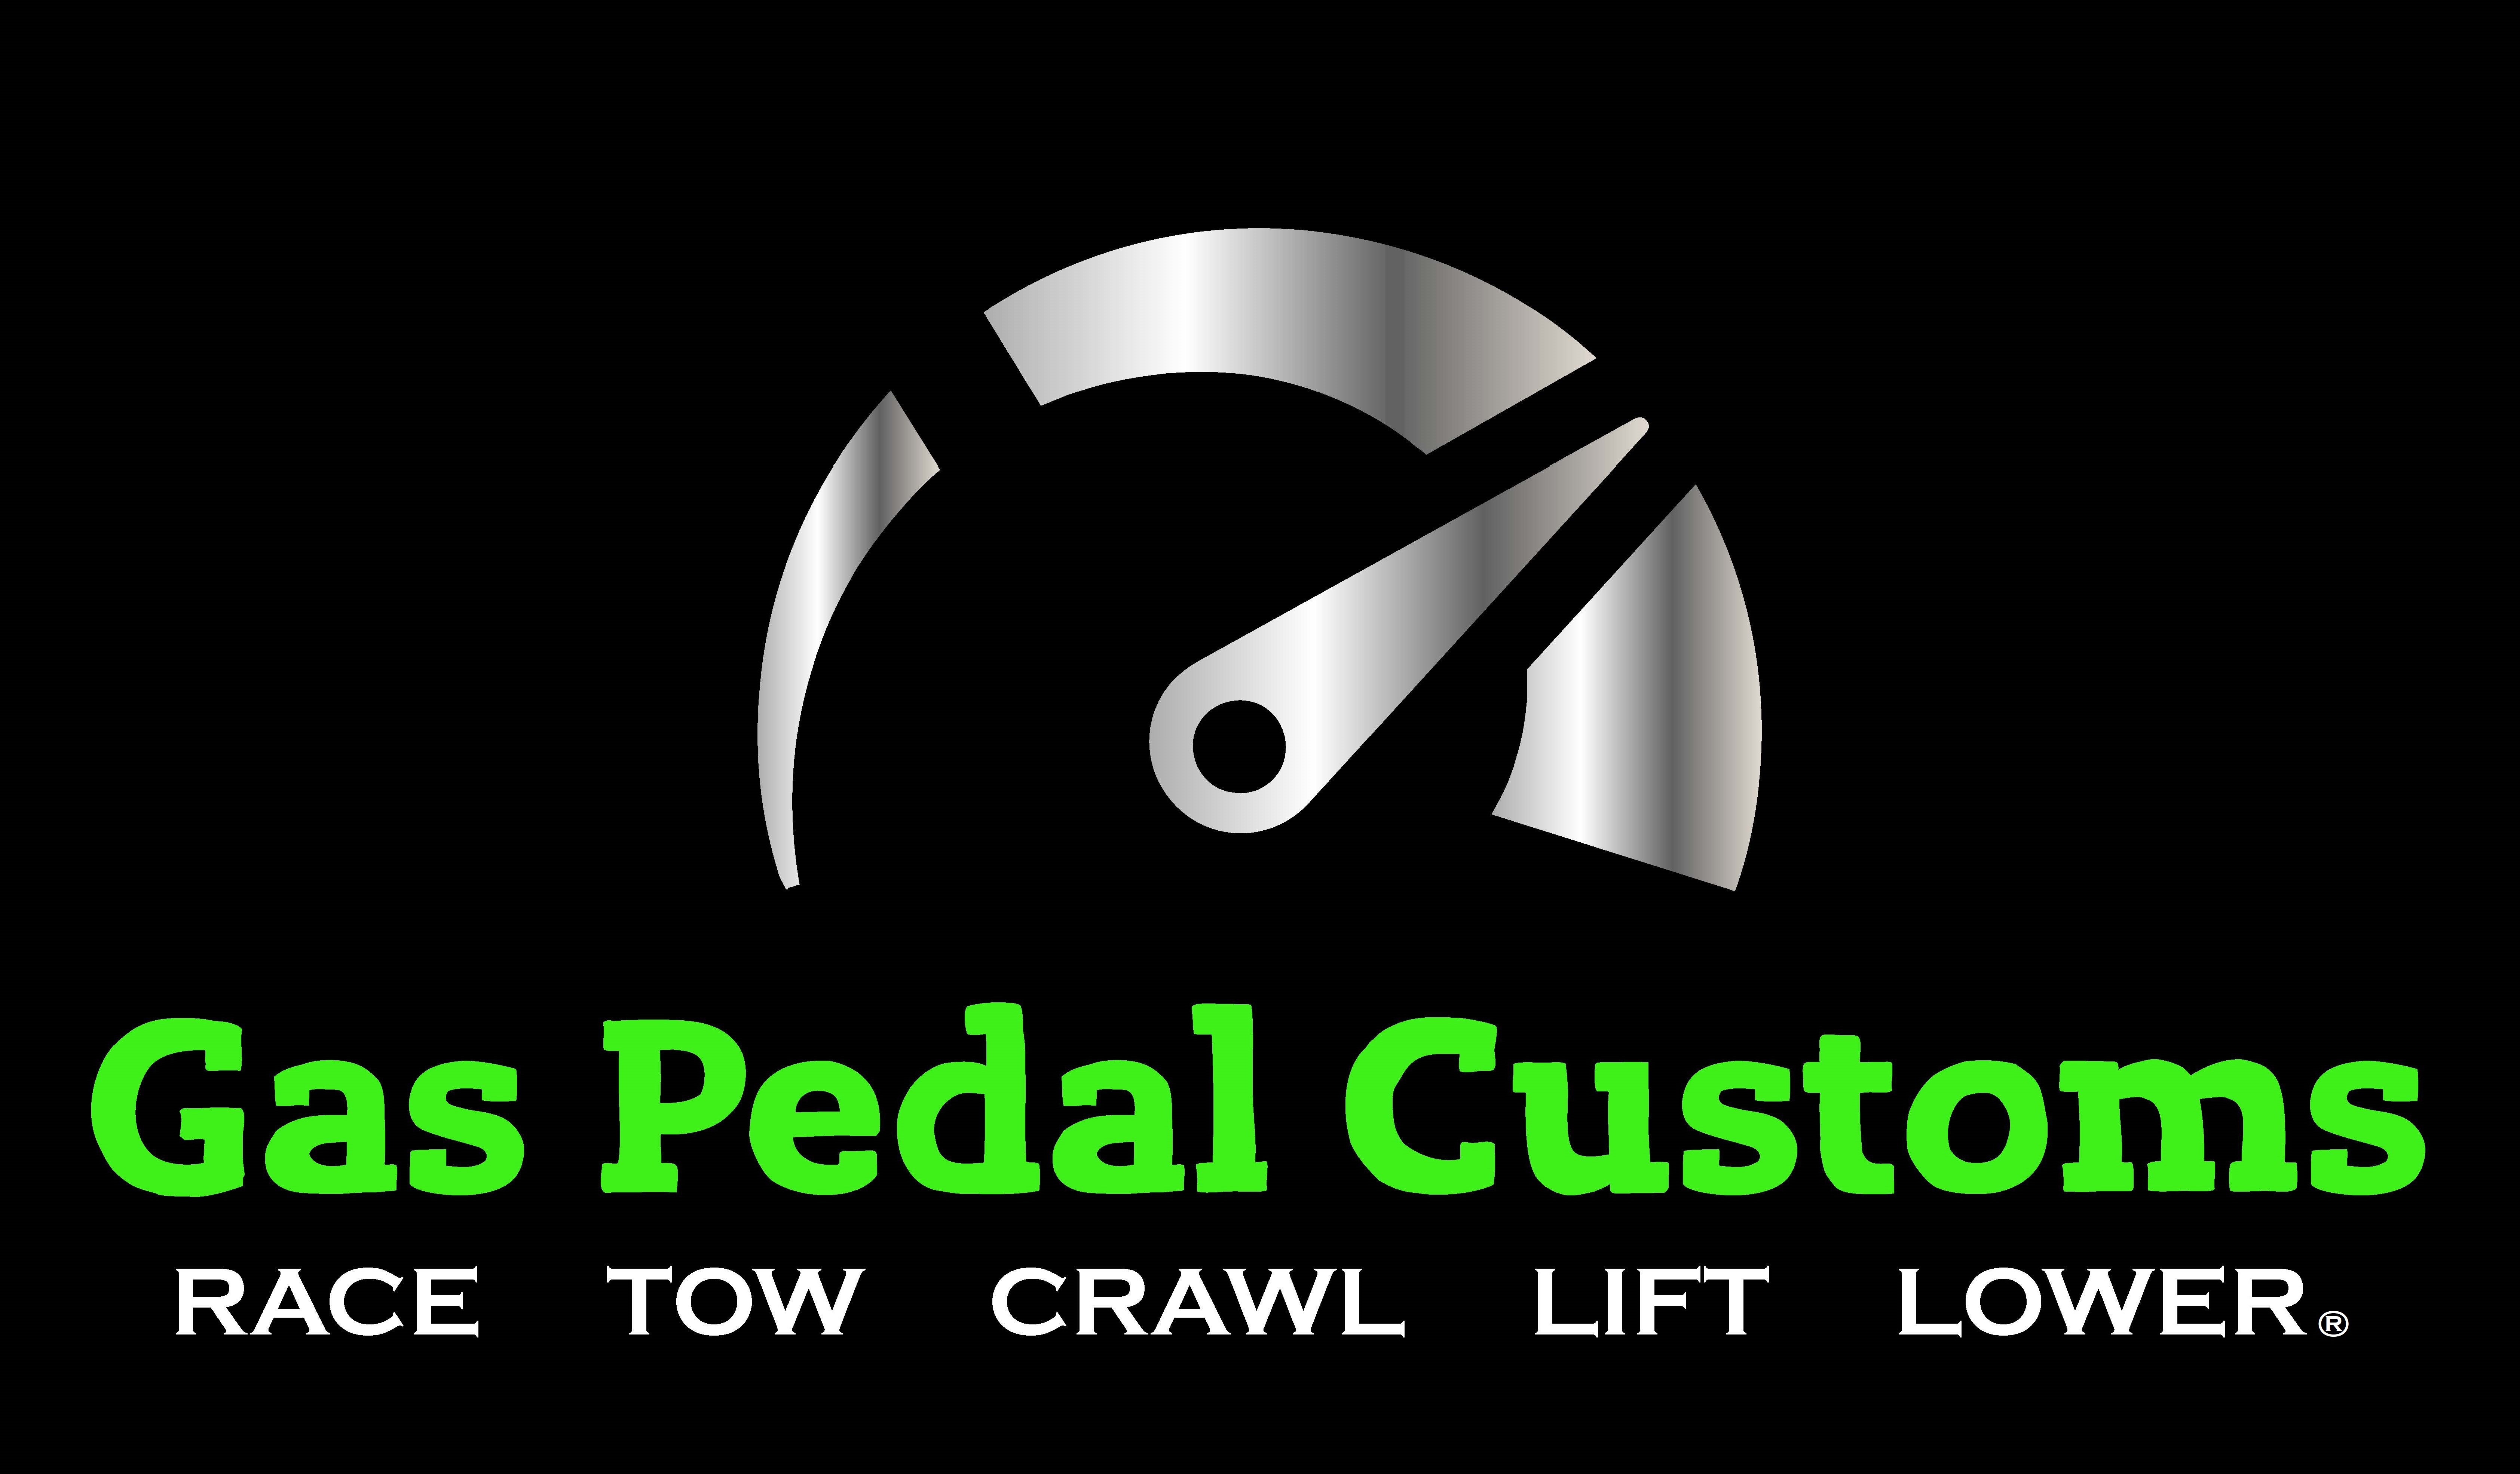 Gas Pedal Customs Special Features